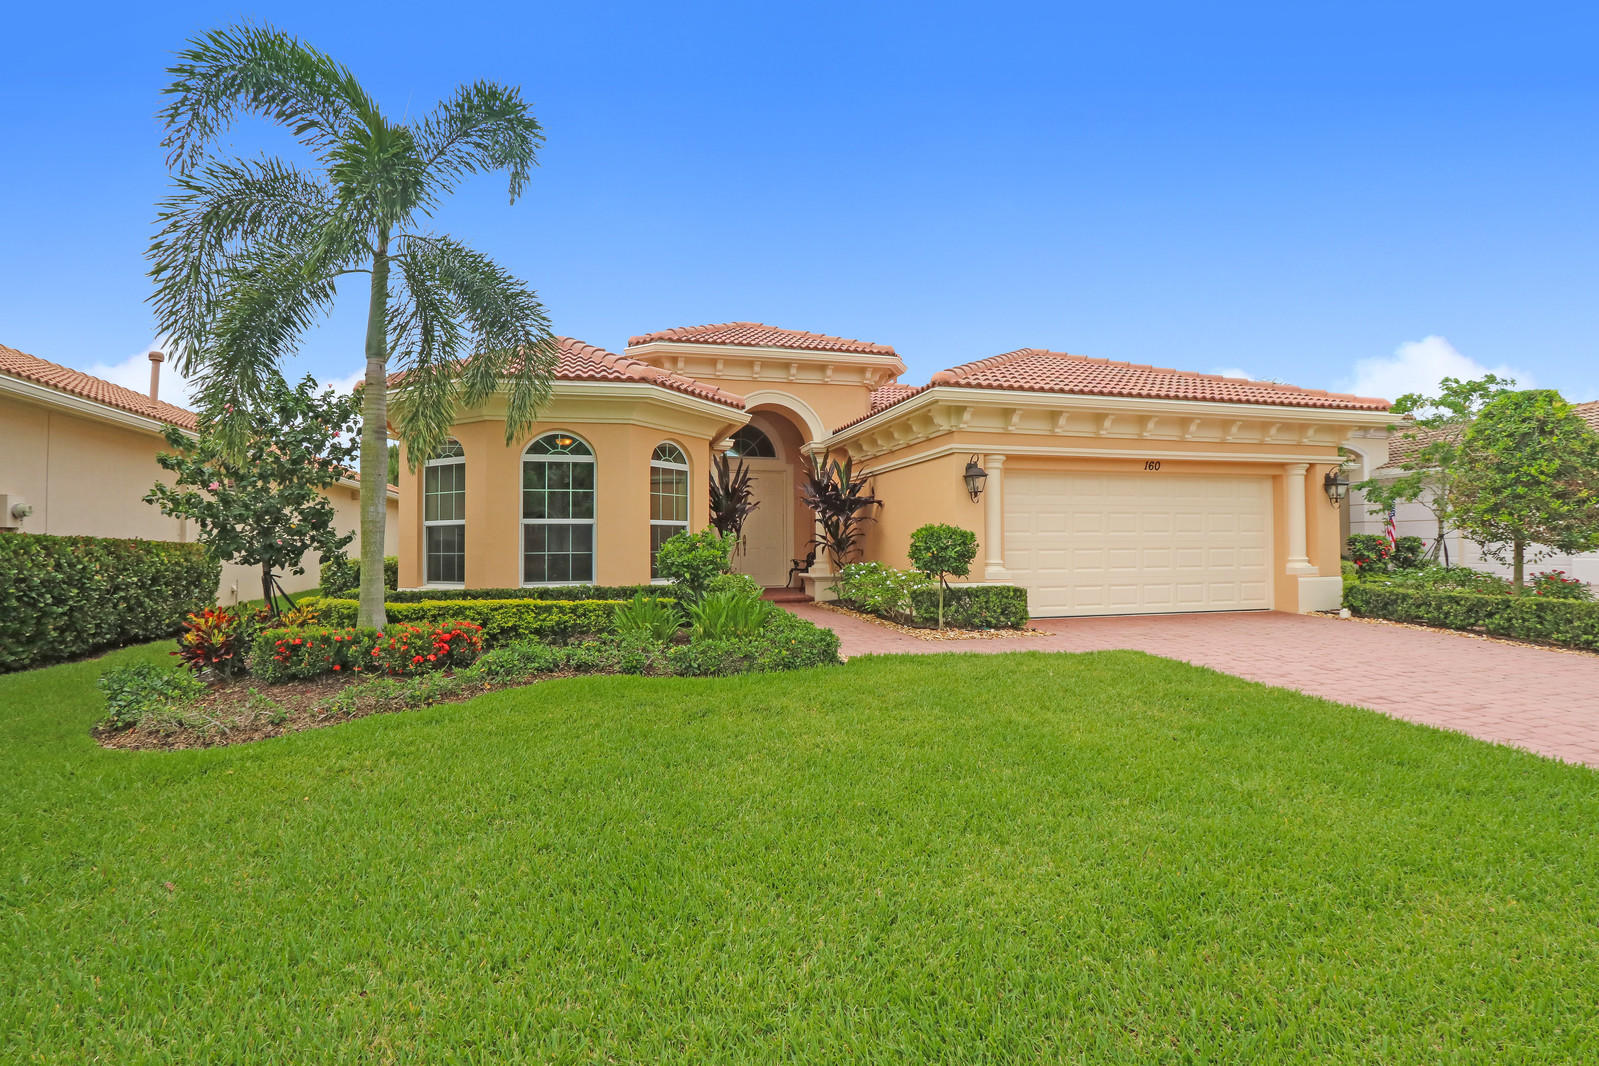 New Home for sale at 160 Carina Drive in Jupiter